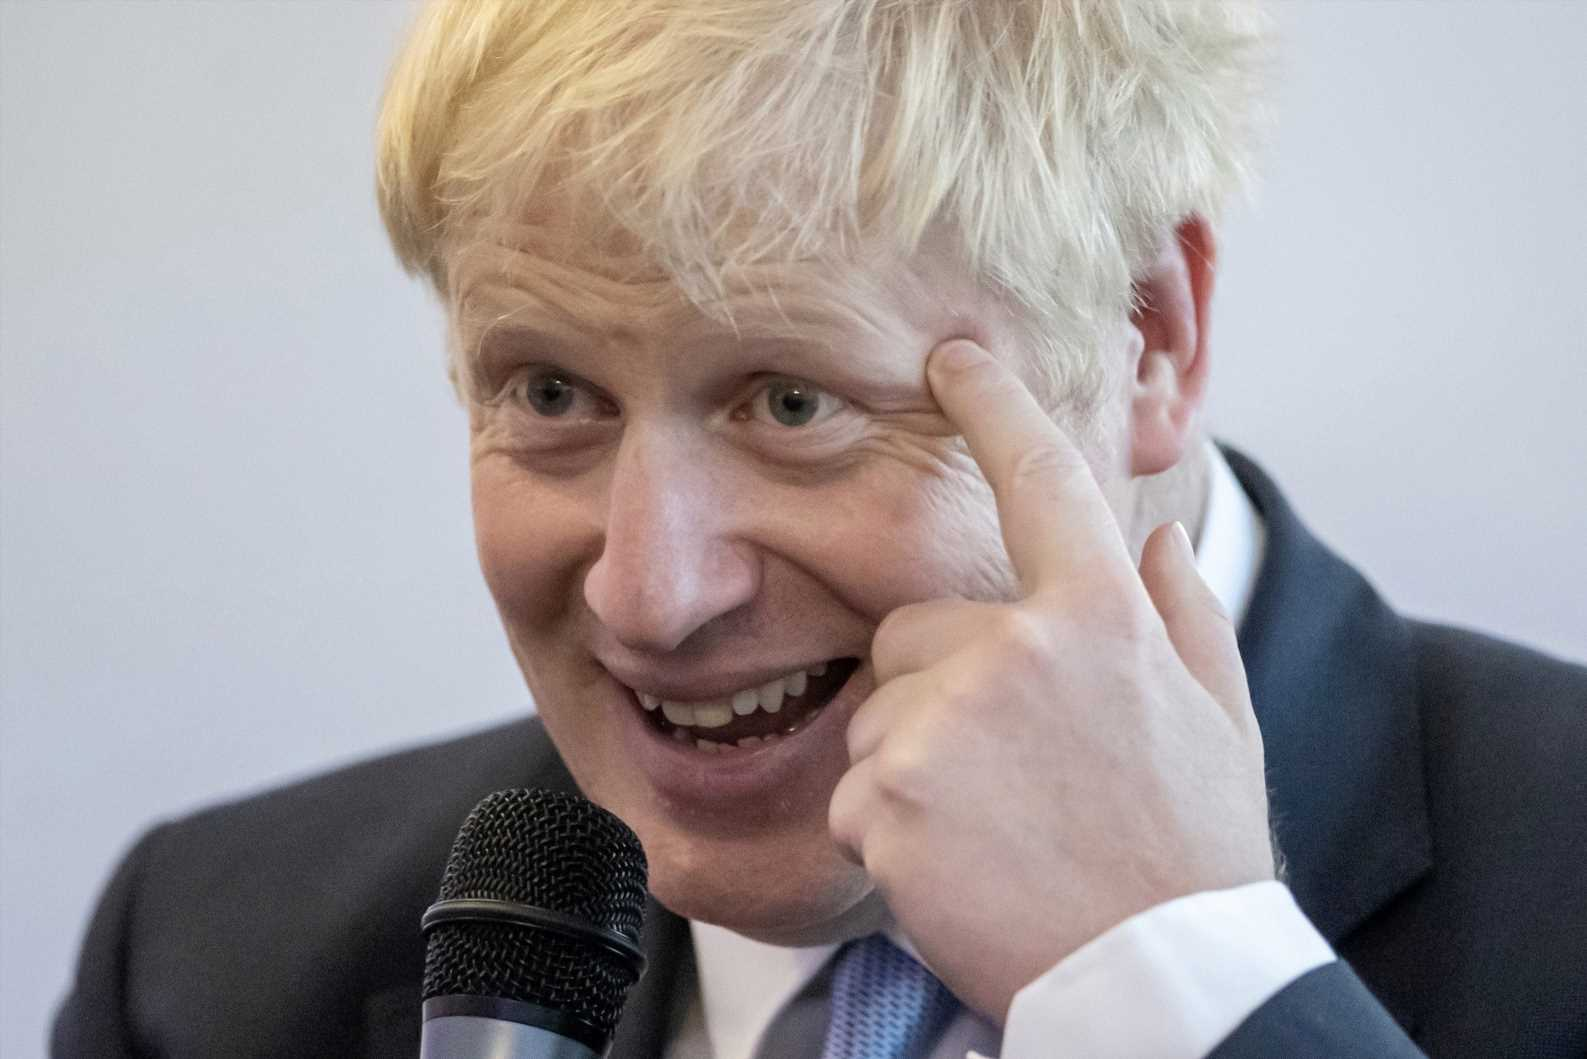 Boris Johnson must convince voters he's serious and statesmanlike enough to be PM – The Sun